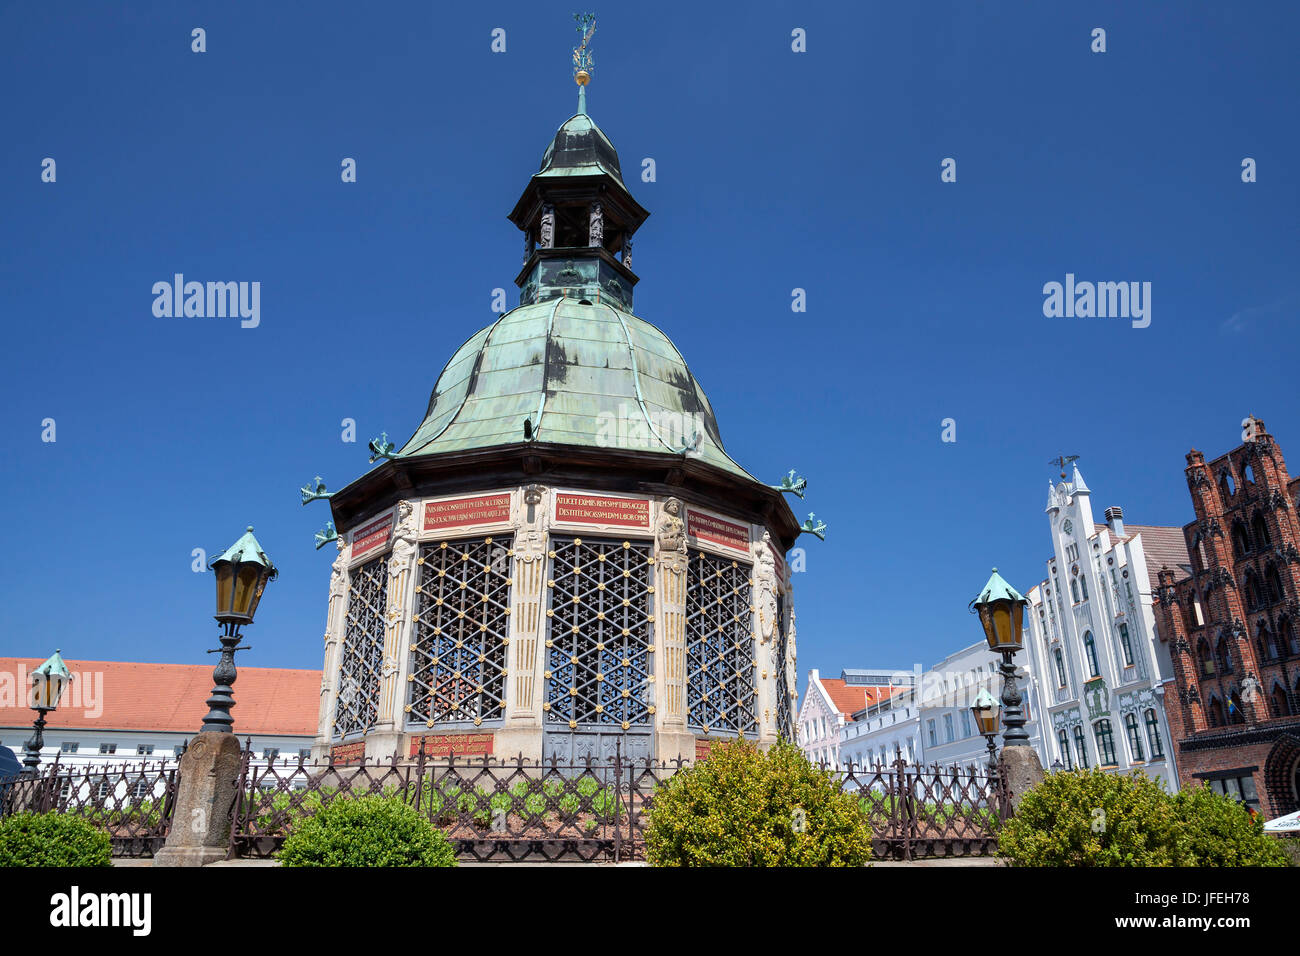 The Wismarer water art on the marketplace, Hanseatic town Wismar, Mecklenburg, Mecklenburg-West Pomerania, Germany - Stock Image